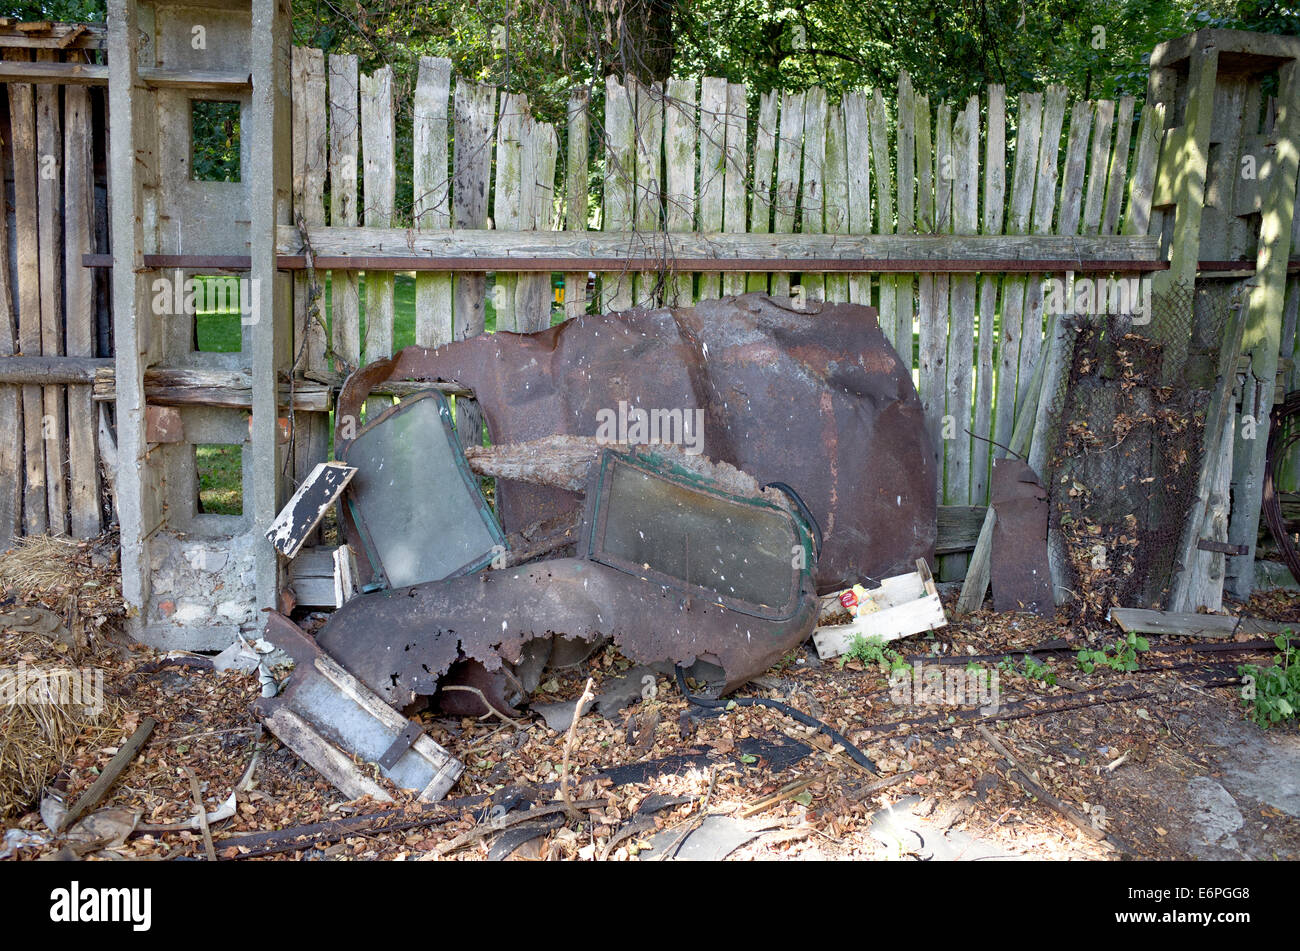 Remnants of an automobile leaning against an old slatted wooden fence in a back yard Rzeczyca Poland - Stock Image